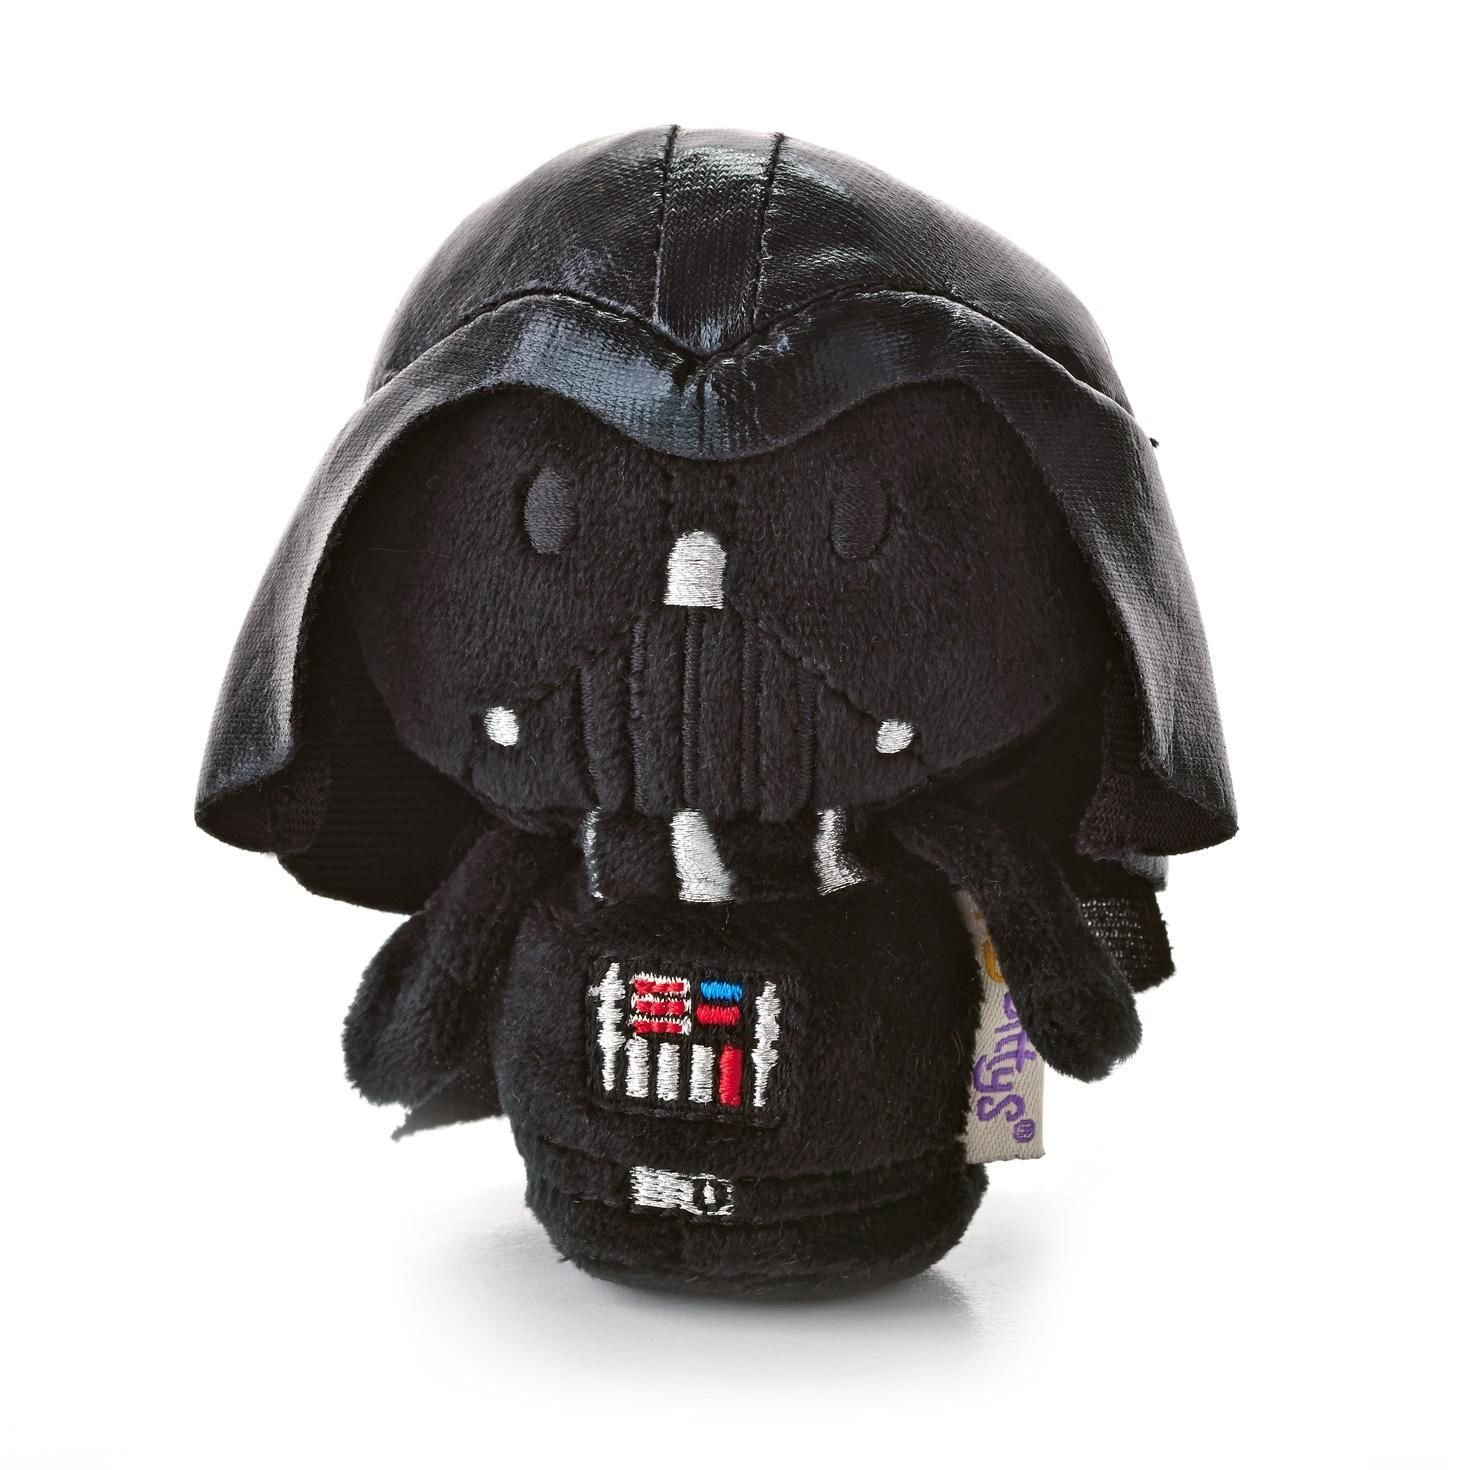 """itty bittys Star Wars Darth Vader Stuffed Animal, This tiny version of Darth Vaderâ""""¢ might be small, but he's still ready to take over the galaxy..., By Hallmark"""